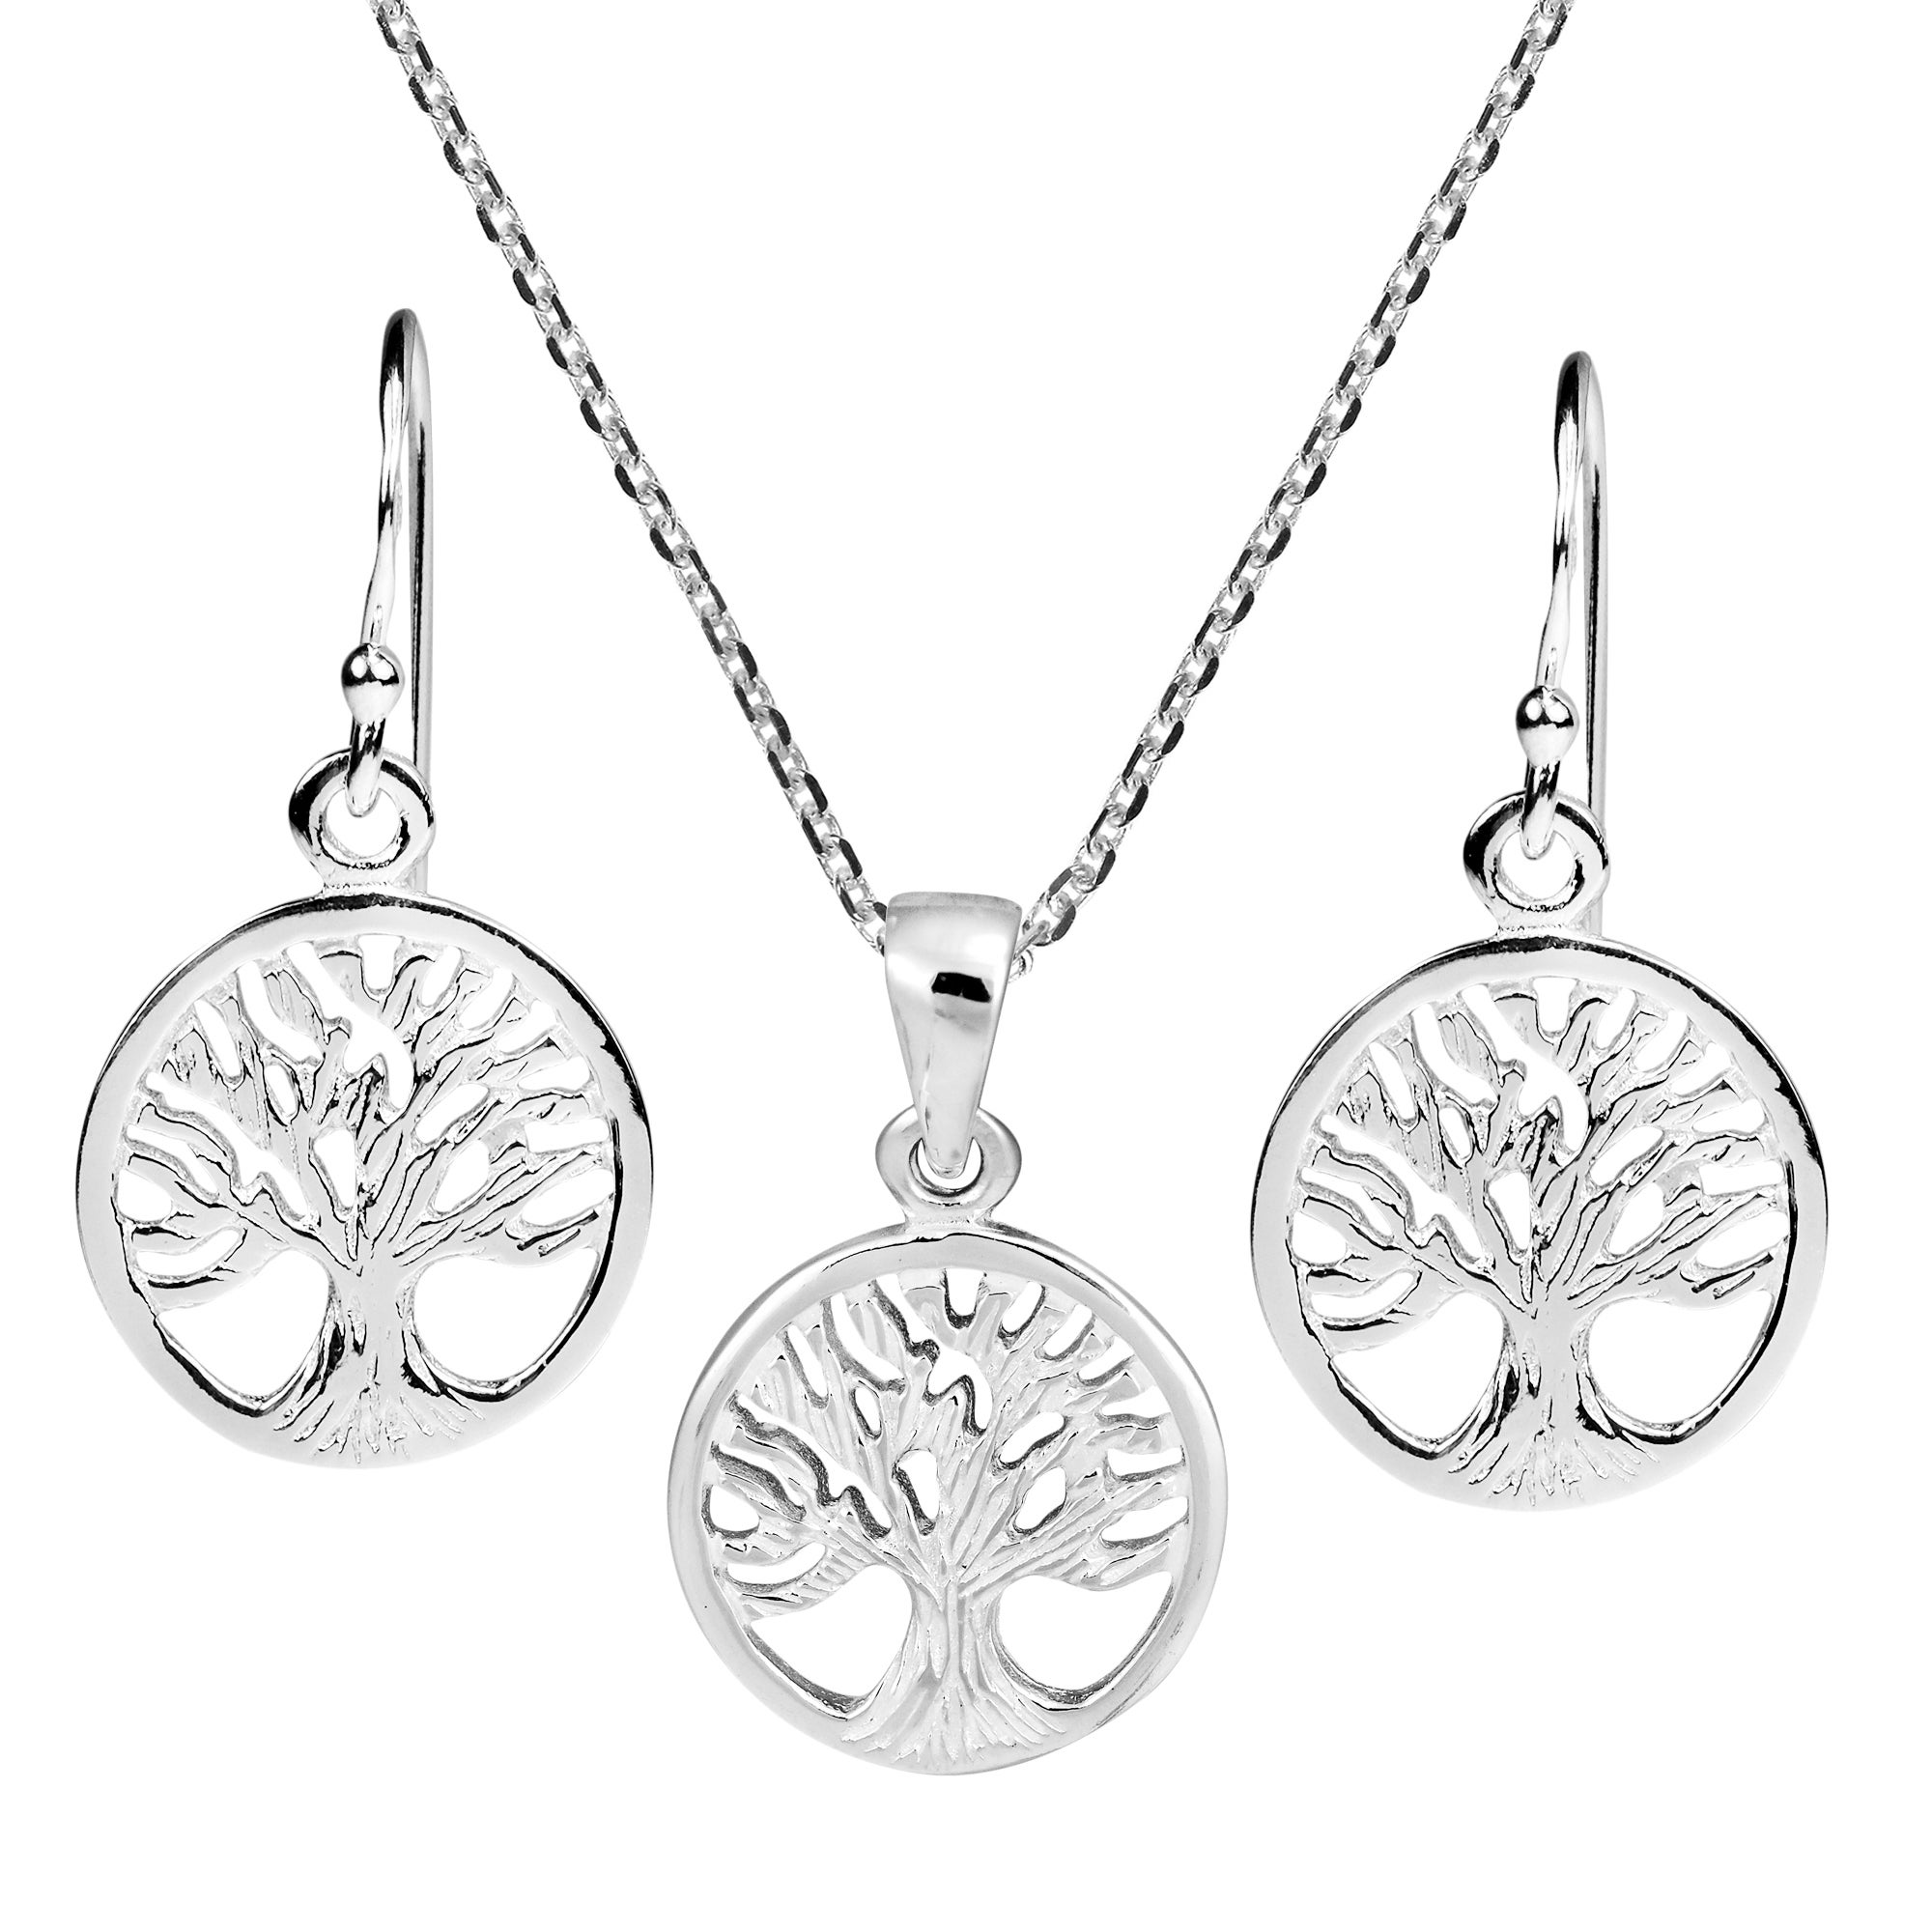 db58c7bdcf40 Shop Handmade Retro Style Tree of Life Symbol .925 Sterling Silver Earrings  Necklace Set (Thailand) - On Sale - Free Shipping Today - Overstock -  16637381